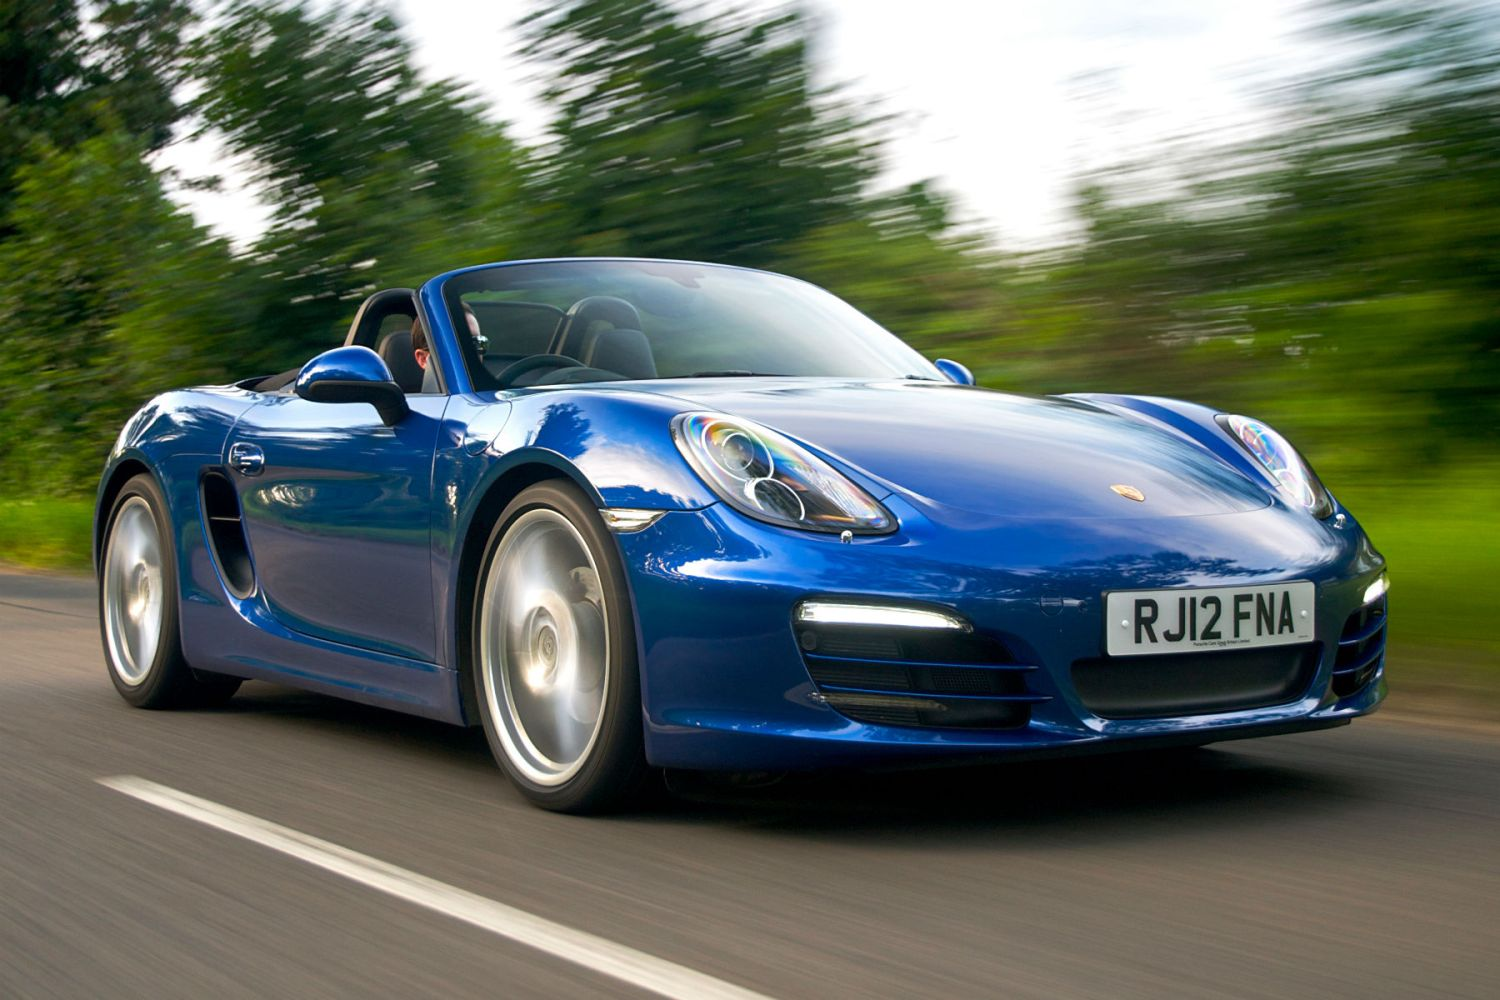 6 reasons why you shouldn't buy a Porsche Boxster